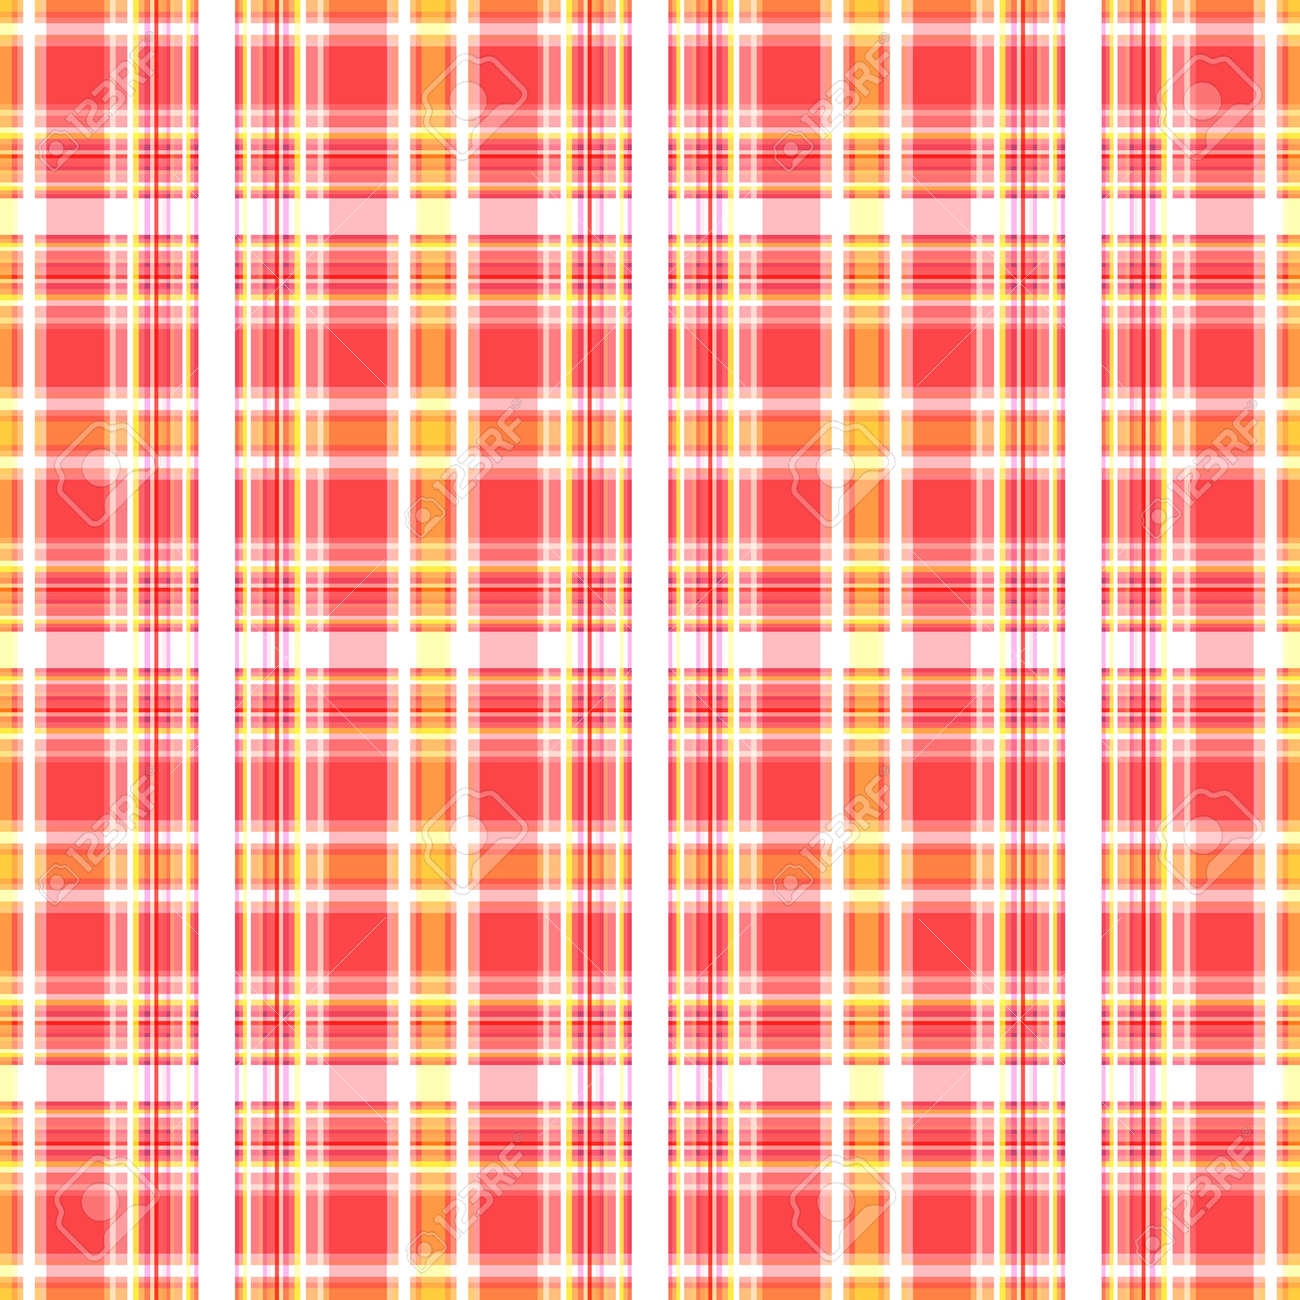 Checkered seamless background. Abstract geometric pattern of stripes of pink, yellow and white. Great for decorating fabrics, textiles, gift wrapping, printed matter, interiors, advertising. - 173090041